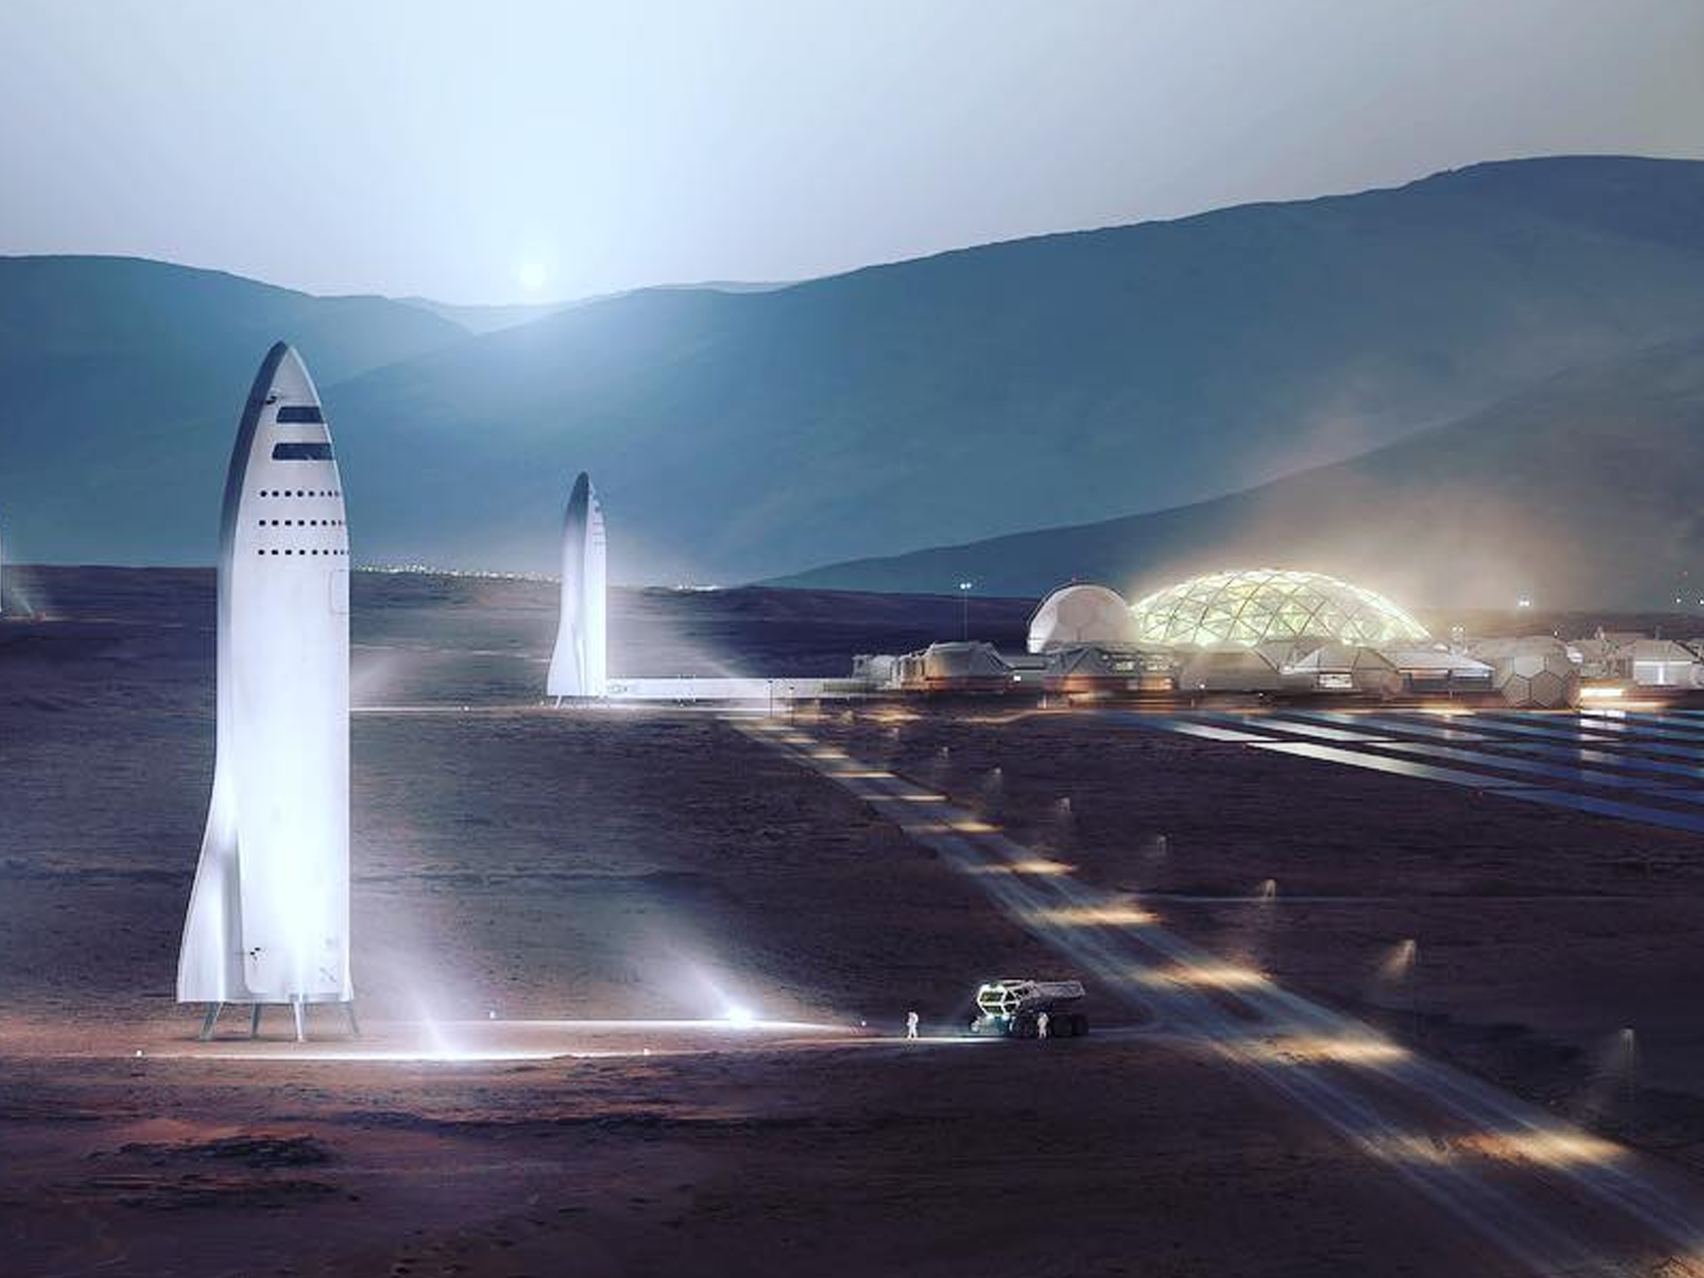 Elon Musk's SpaceX says it will 'make its own laws on Mars'